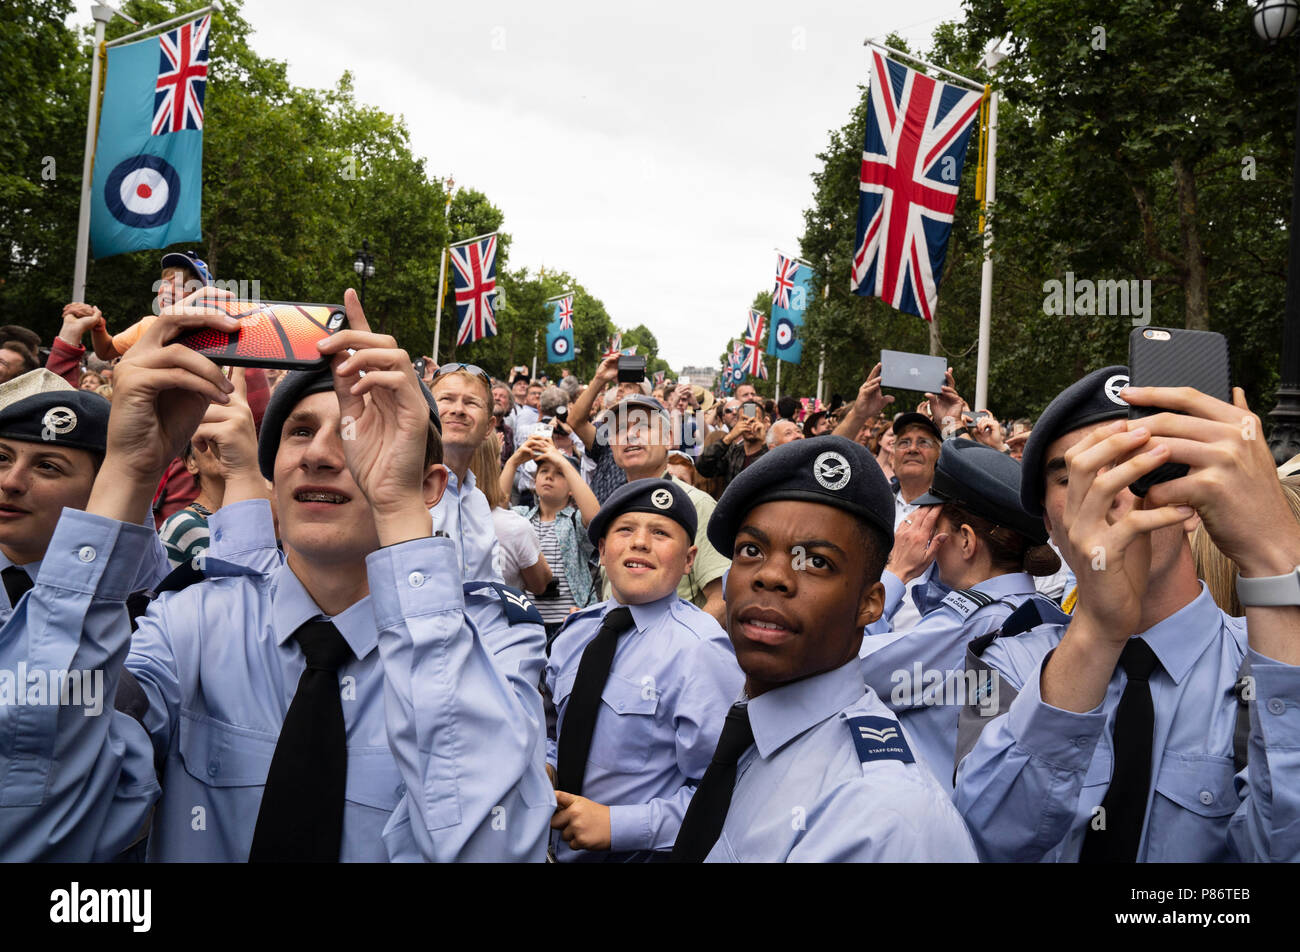 London, UK. 10th July, 2018. Air Training Corps cadets watch the flypast on the Mall, in London of the RAF 100 Flypast on July 10, 2018. Photo by David Levenson Credit: David Levenson/Alamy Live News - Stock Image